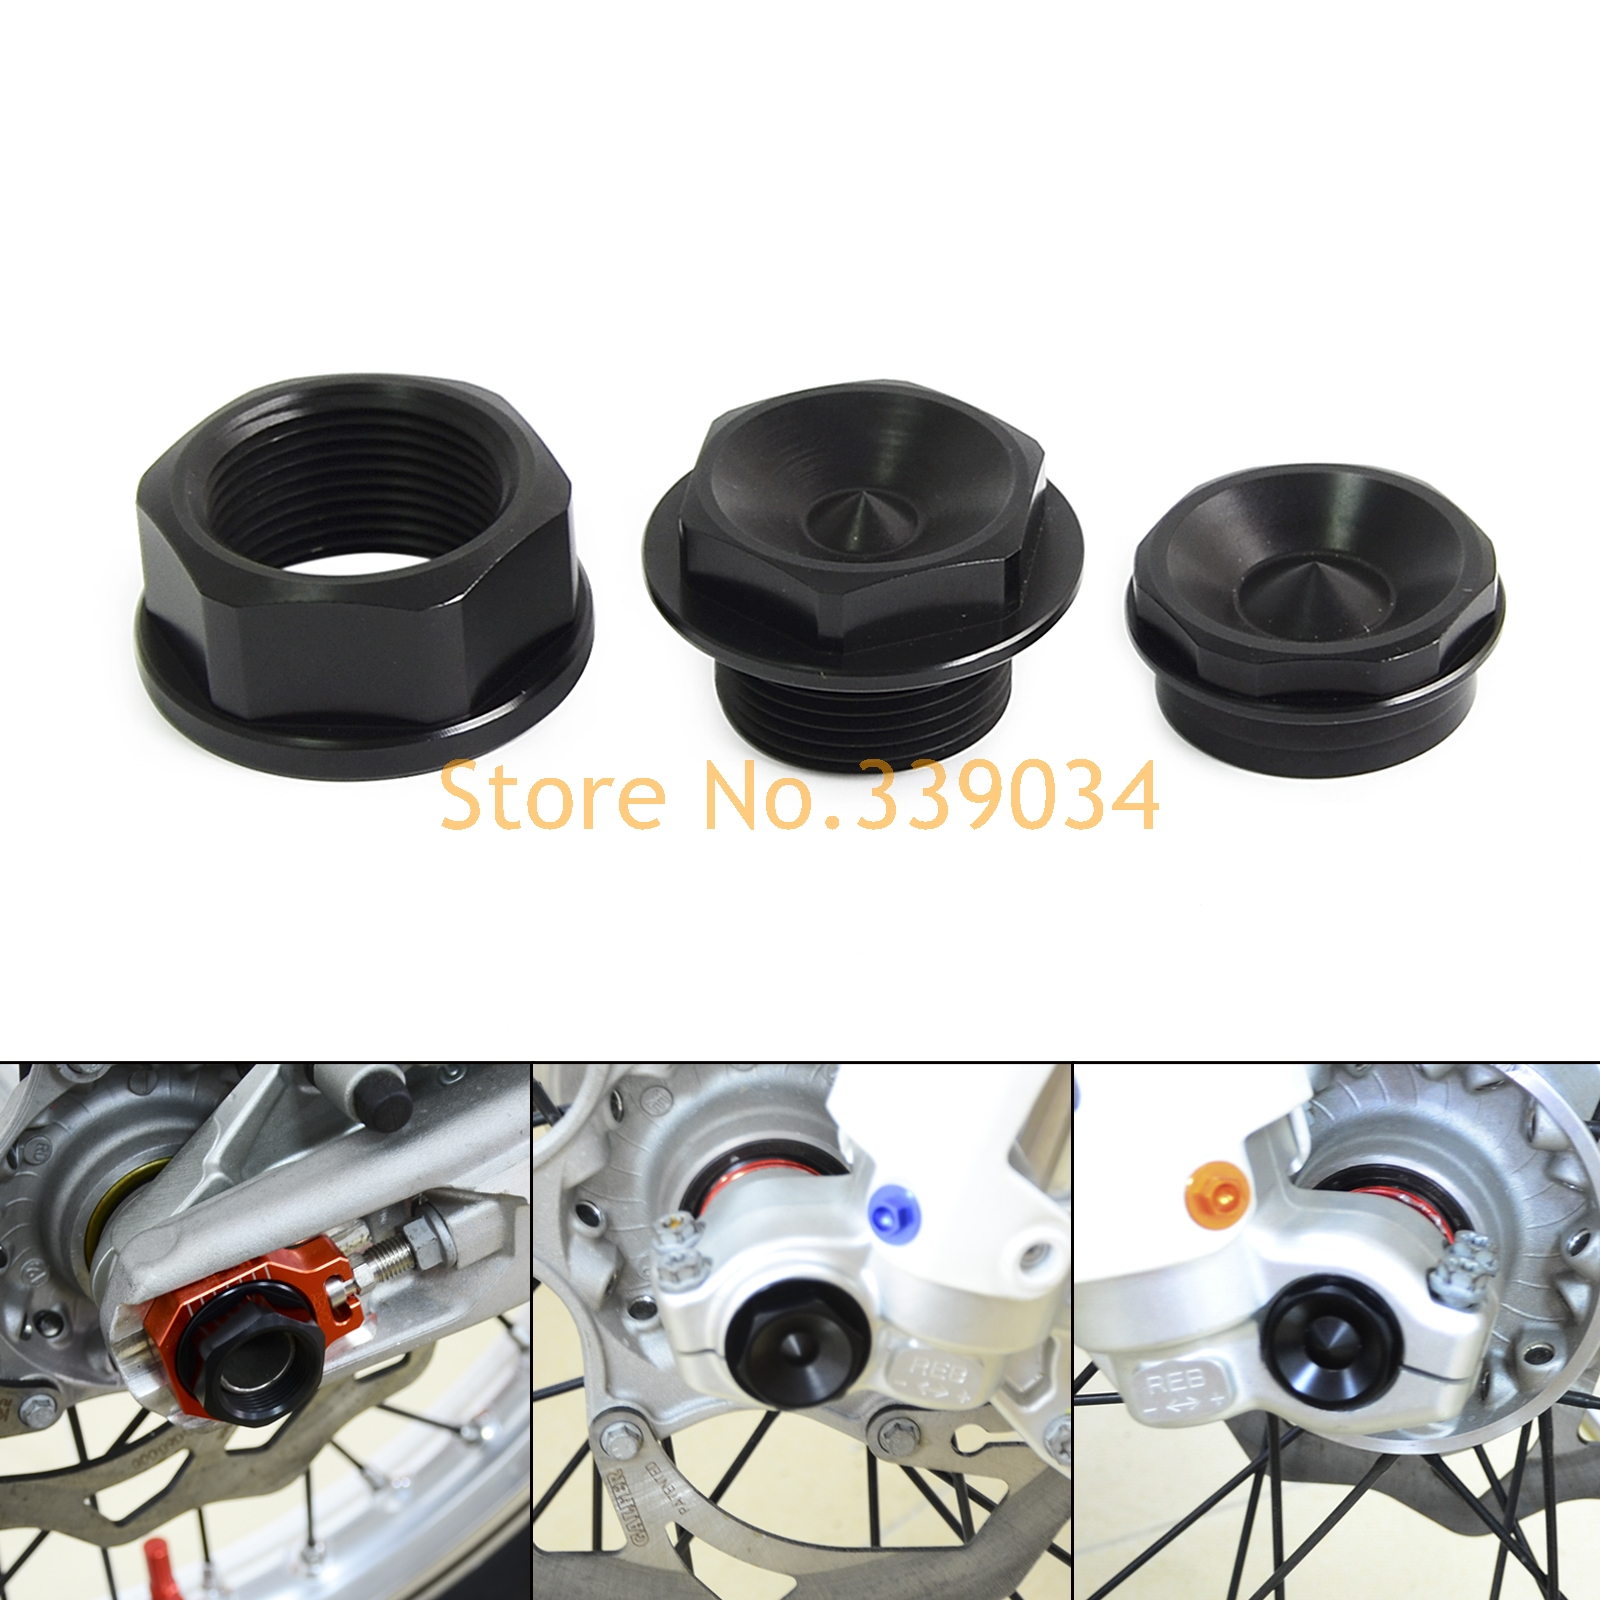 Front Left & Right Wheel Spindle Collar Screw Bolt  For KTM SXS SX EXC XC-W SX-F XC  125 200 250 300 350 400 450 500 525 530 690 motorcycle dirt bike enduro off road rim wheel spoke skins for ktm 50 65 85 sx sx f 300 450 exc f six days 450 500 250 exc f 530